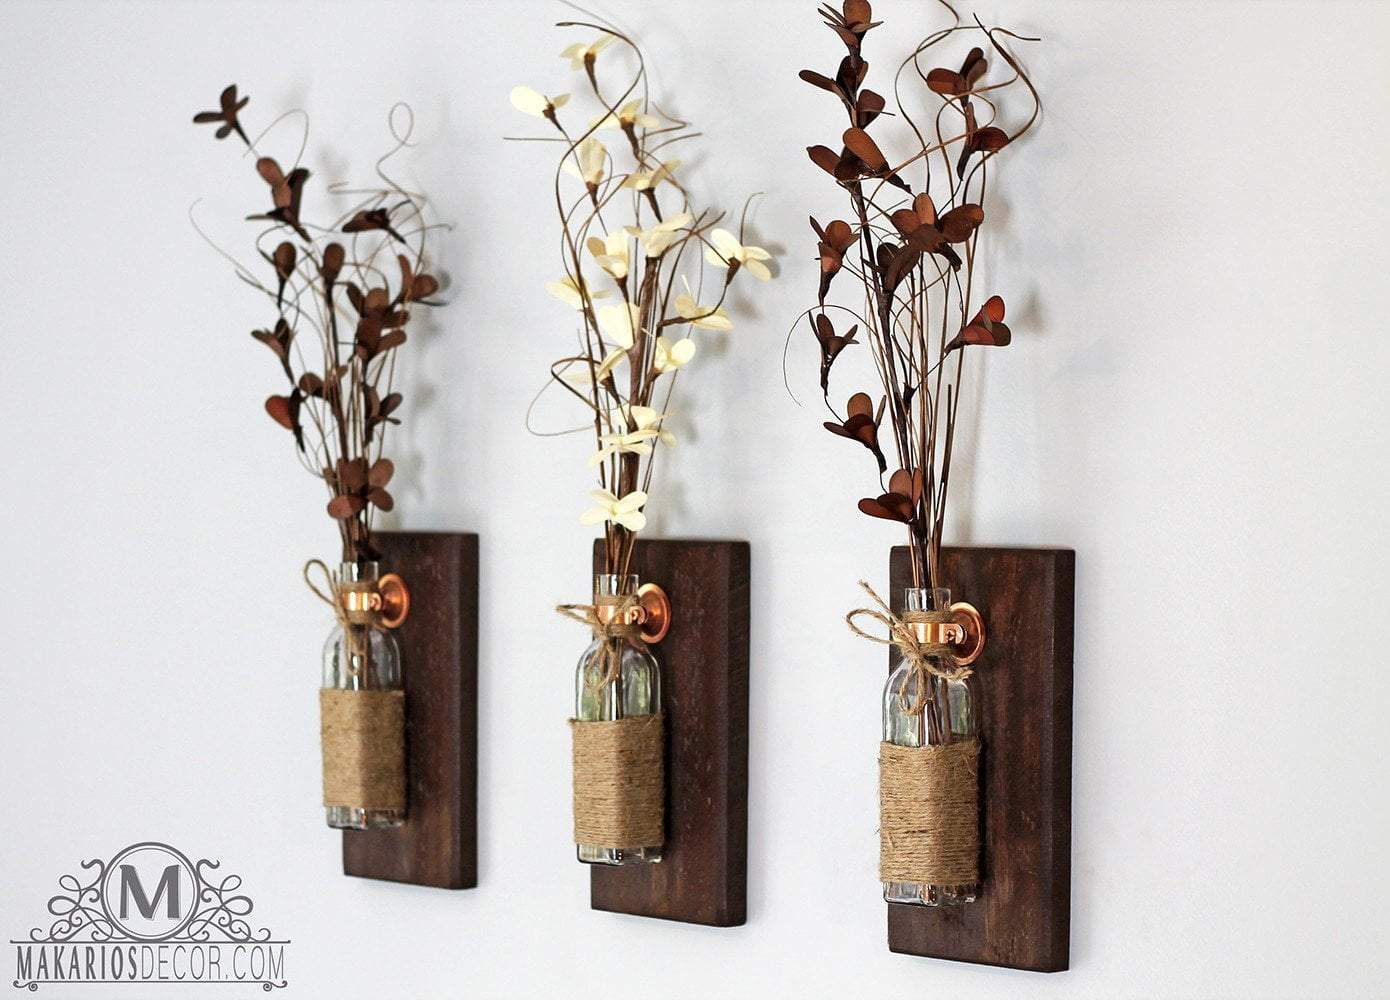 Shop Makarios Rustic Wall Sconces - Reclaimed Wood Wall ... on Wood Wall Sconces id=82203